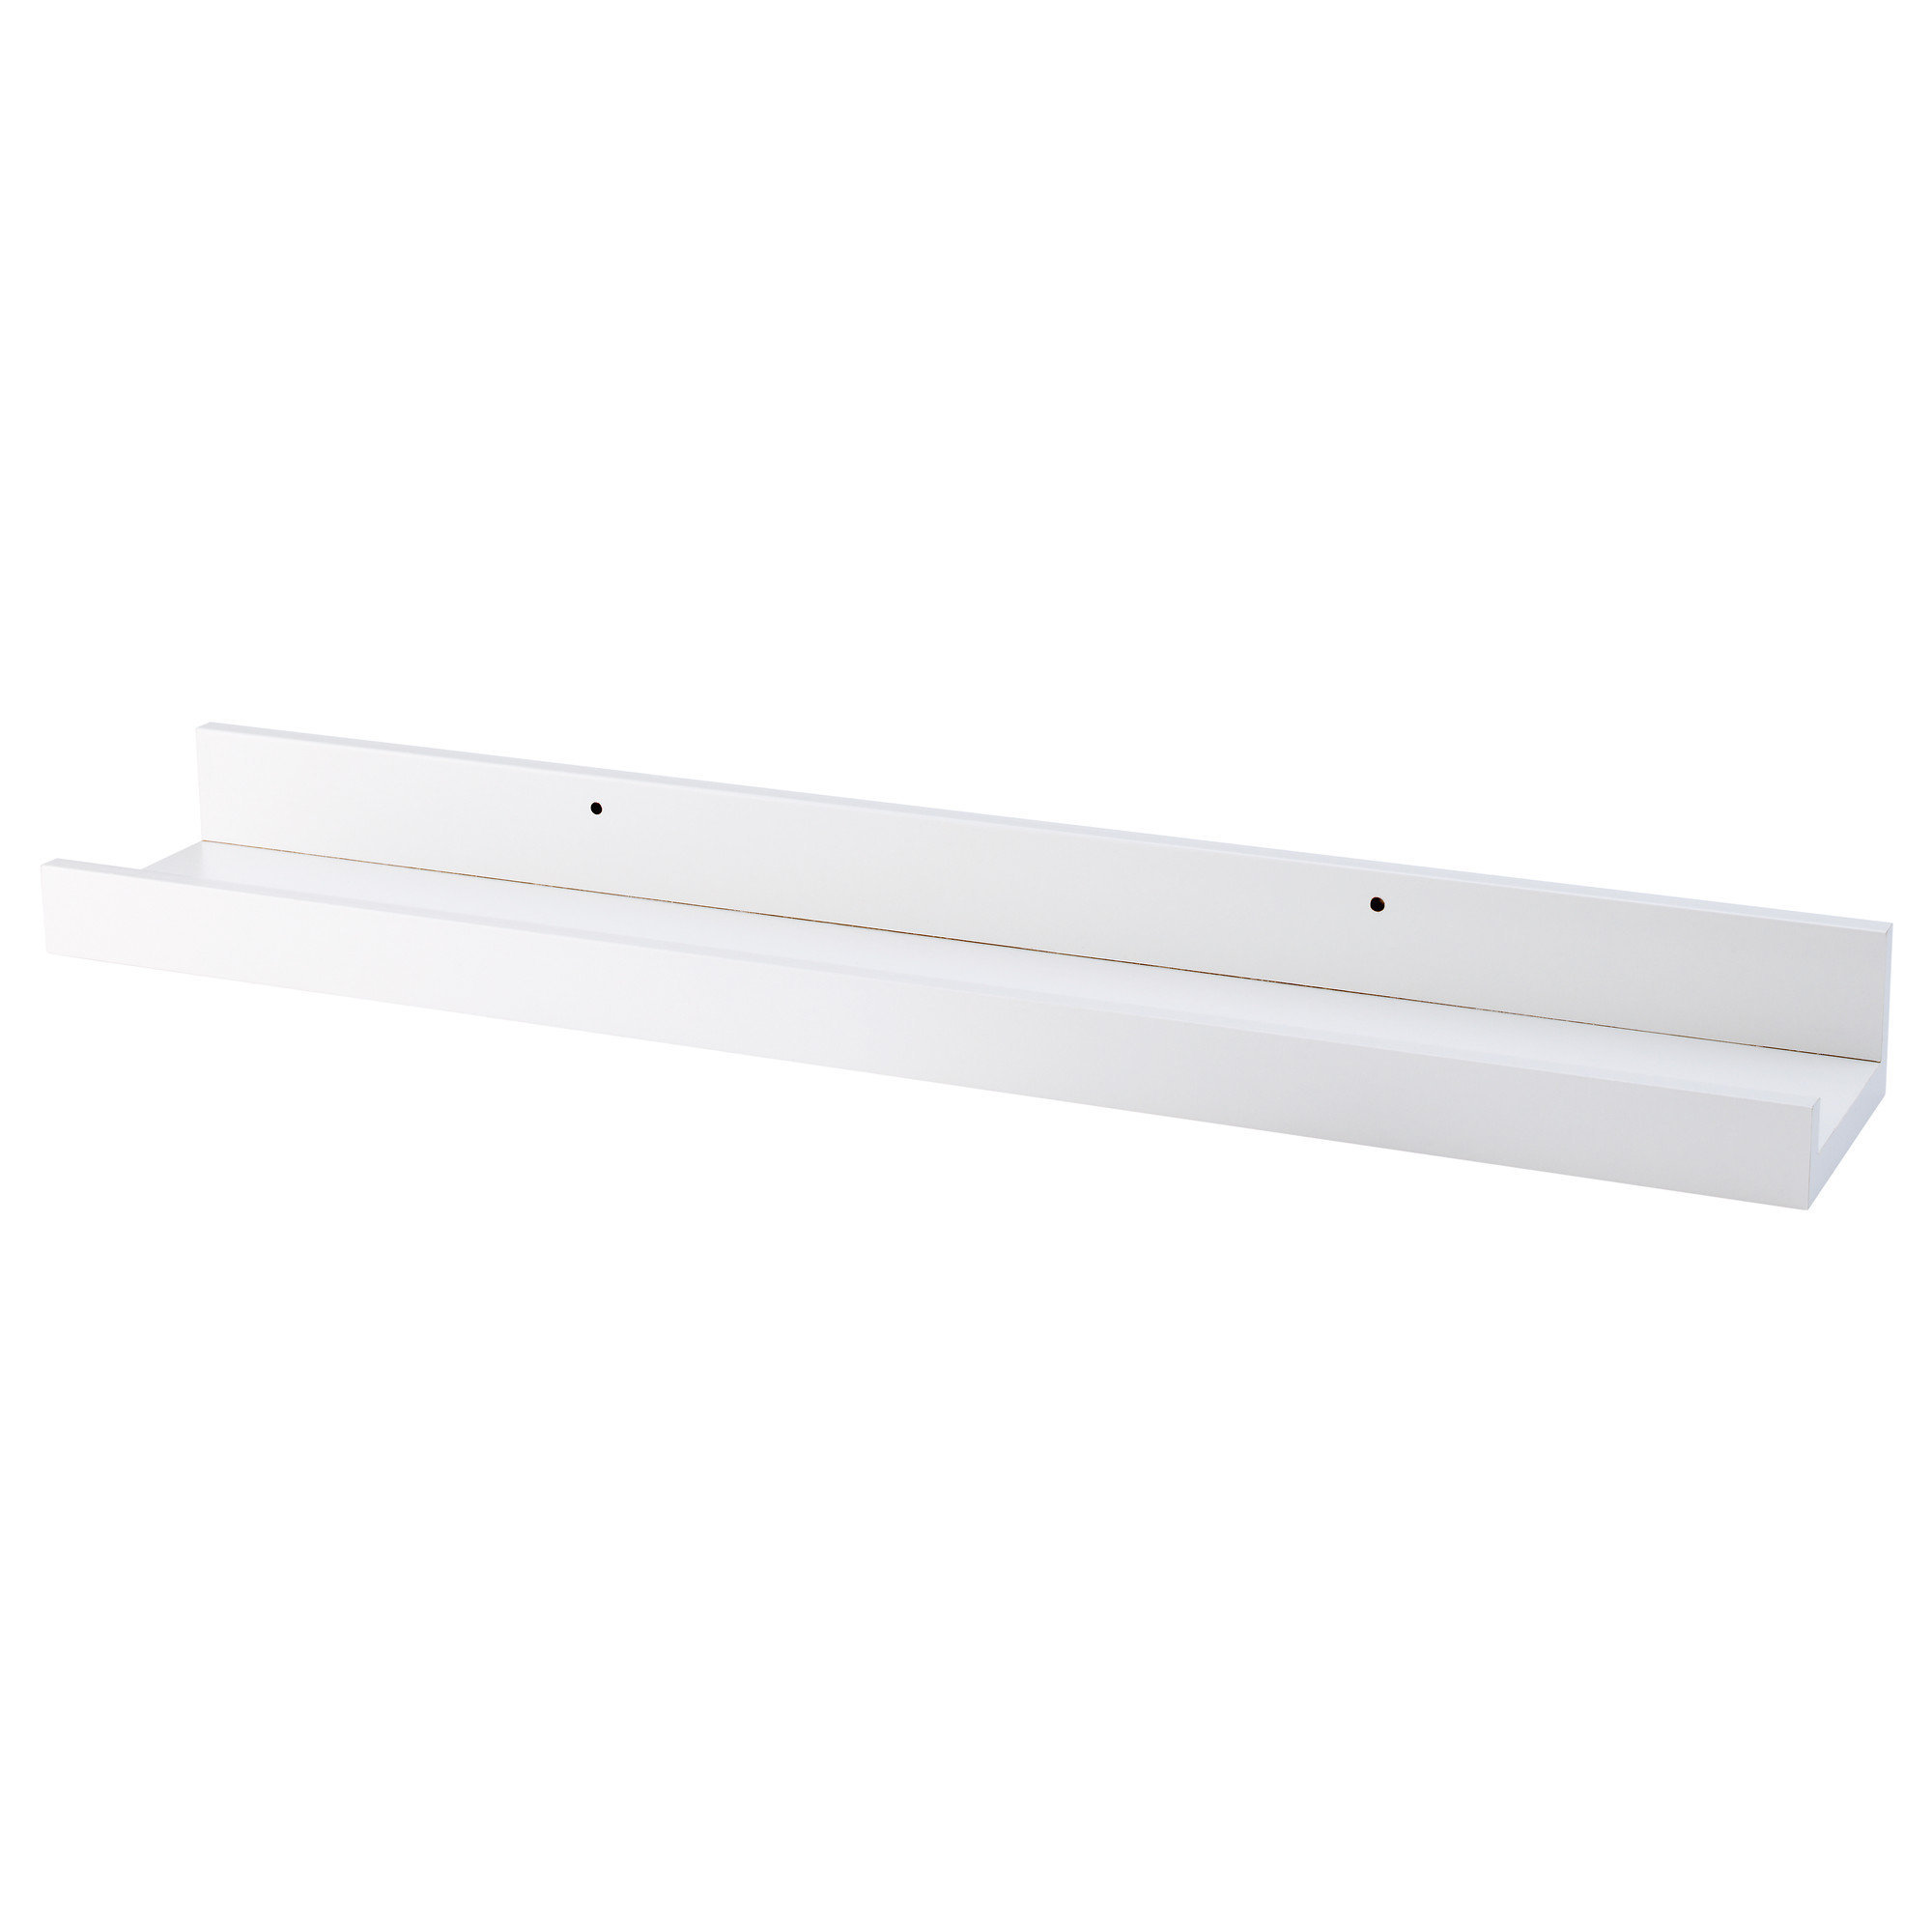 ribba picture ledge 45 1 4 from ikea